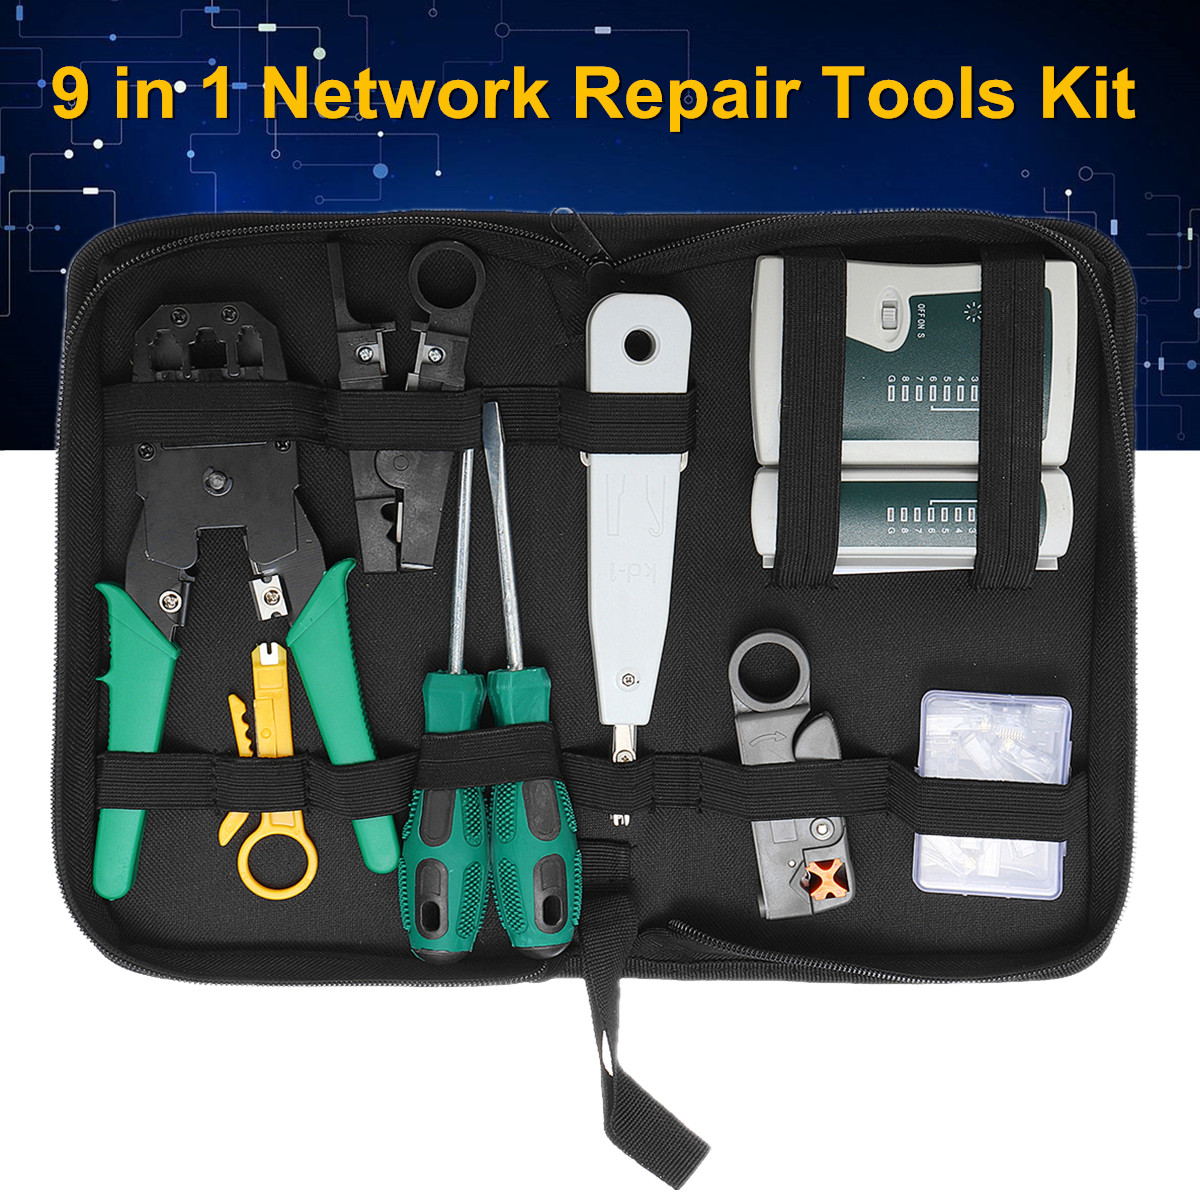 Cat5 RJ45 RJ11 RJ12 9 in1 LAN Network Repair Cable Tester Crimper Plier Hand Tool Kit Stripping Make Ethernet Connector Test yoc hot network lan cable tester rj45 rj11 rj12 cat5 crimper